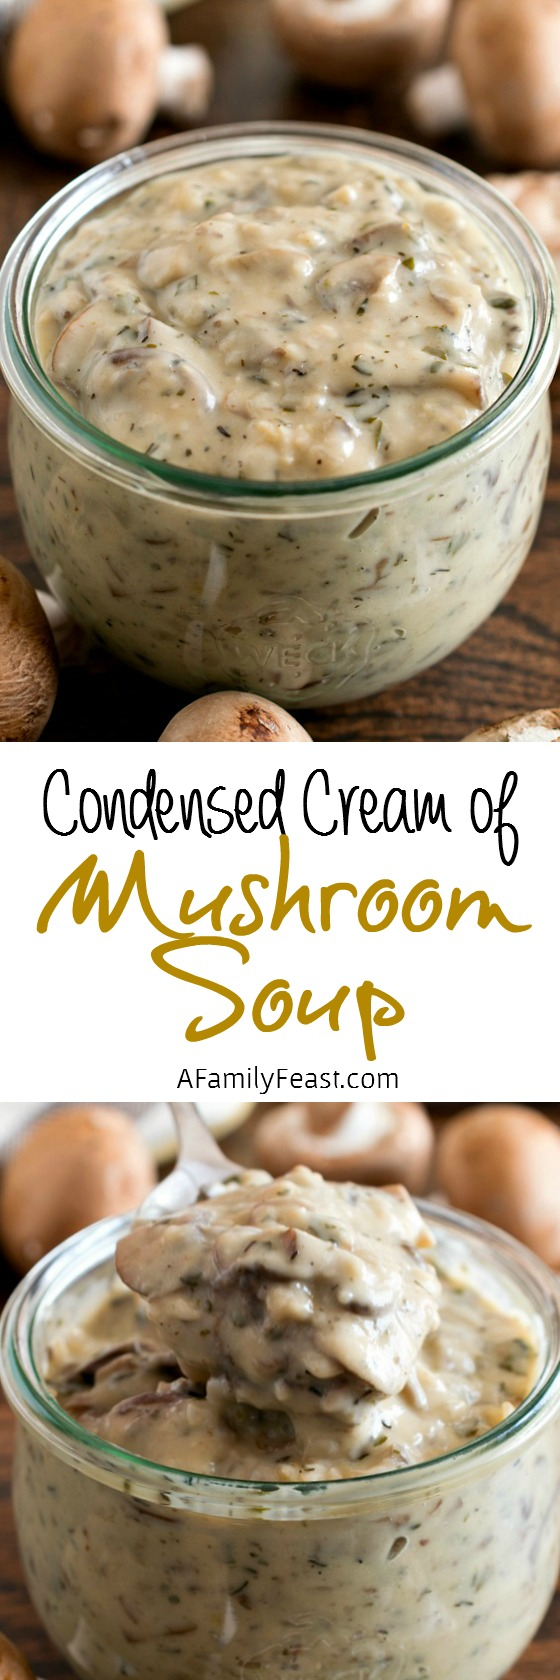 Condensed Cream of Mushroom Soup - A Family Feast